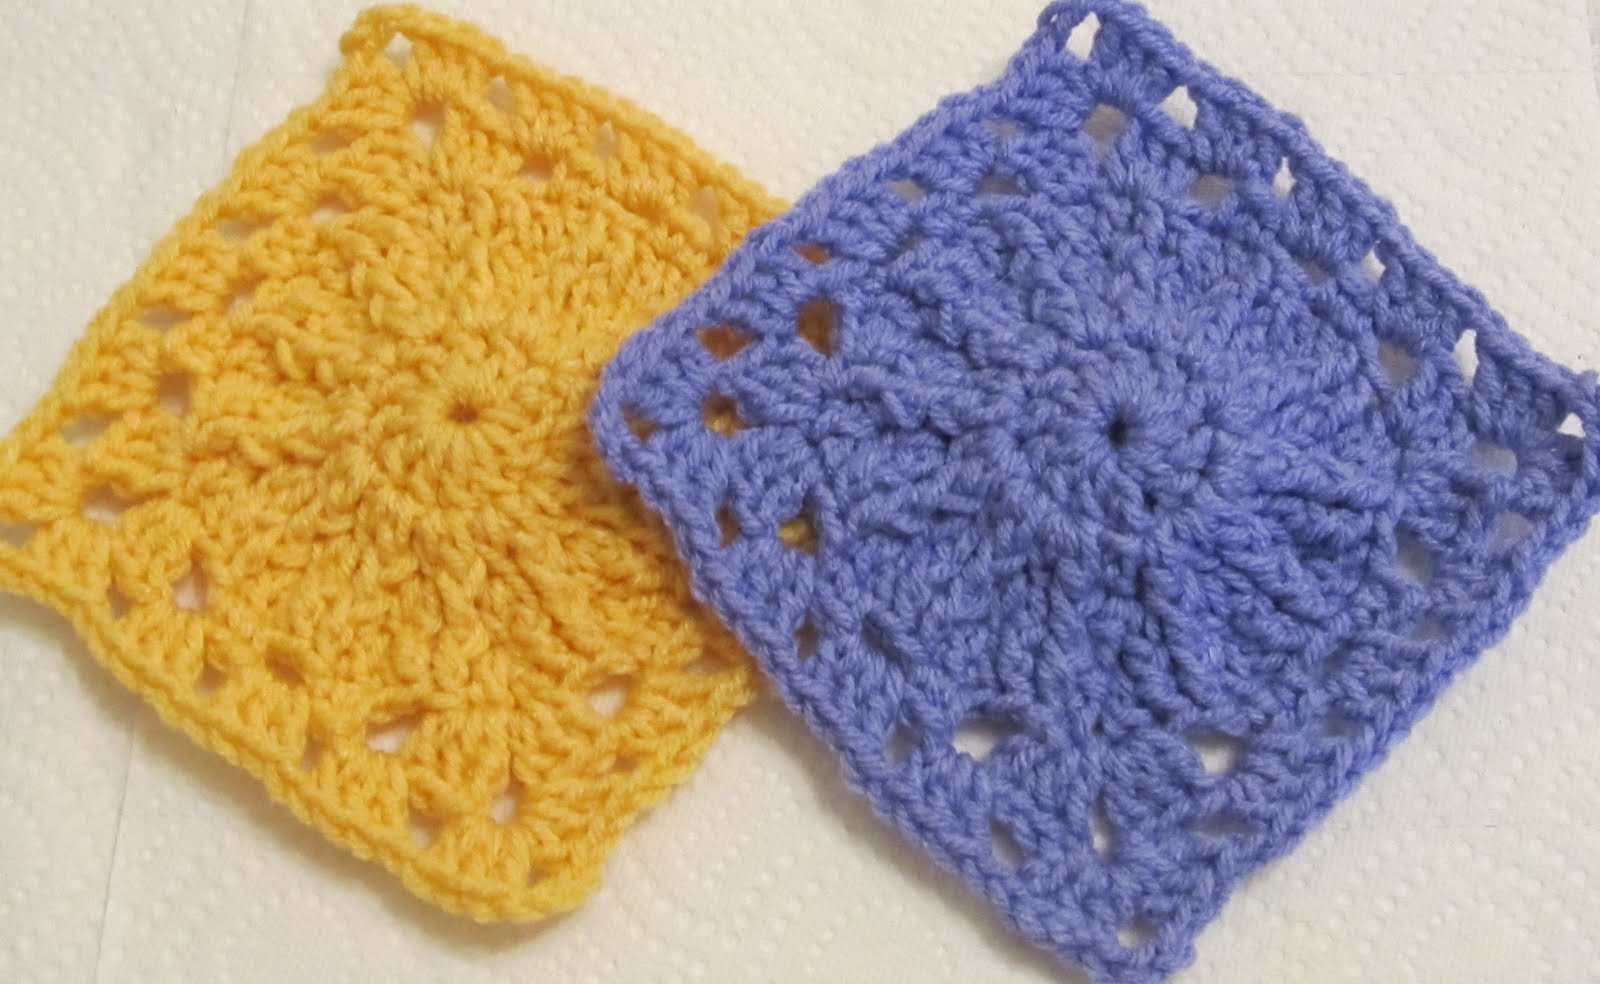 Free Crochet Square Patterns Lovely Smoothfox Crochet and Knit Smoothfox Charity Square Nbr 1 Of Delightful 48 Models Free Crochet Square Patterns